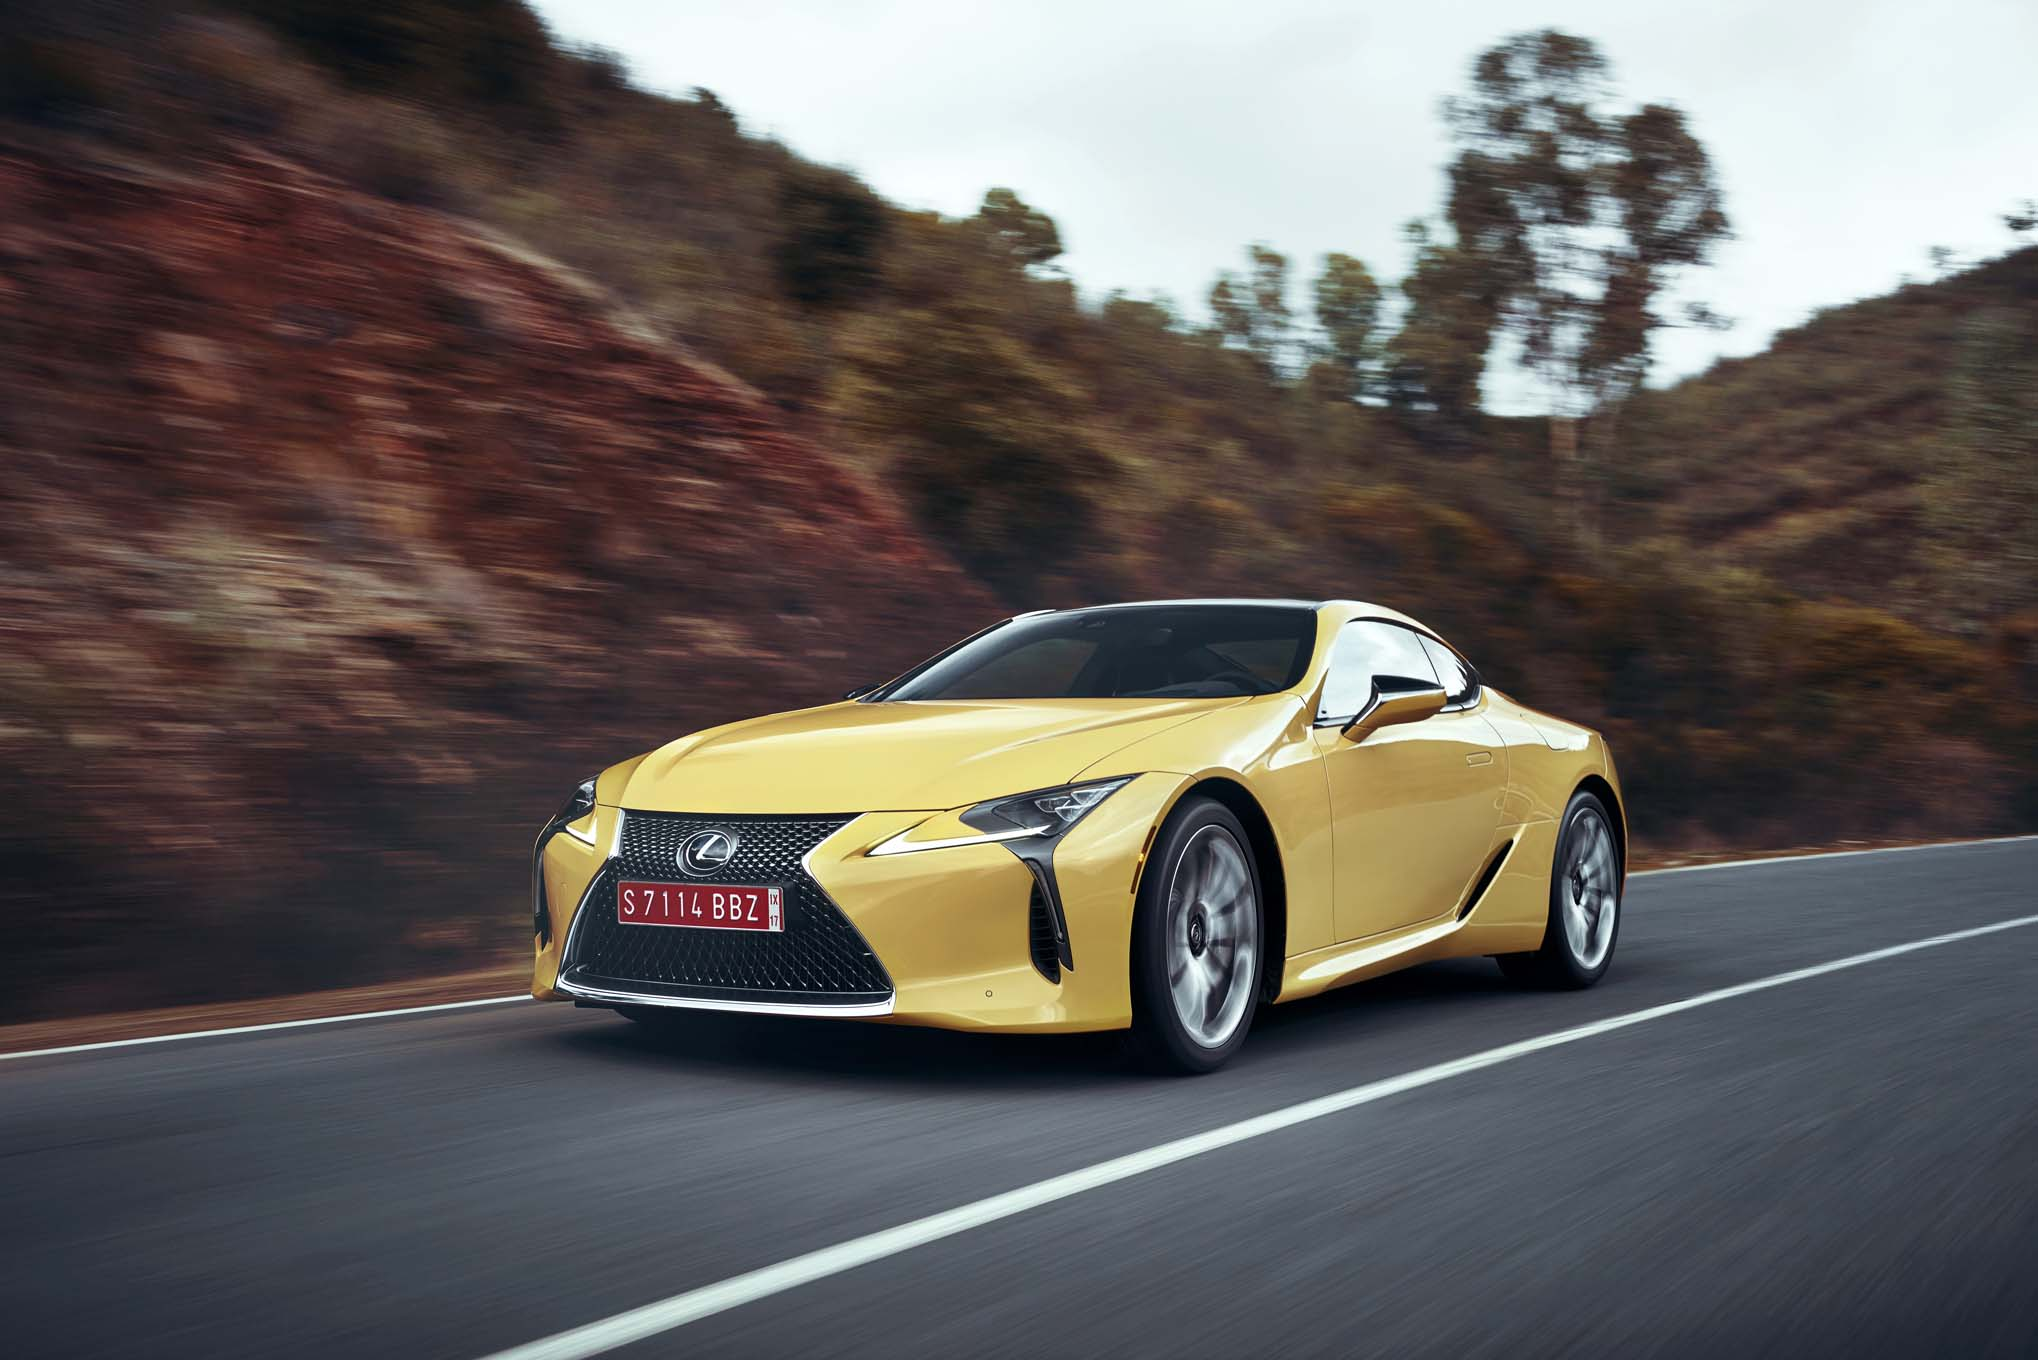 Lexus Delivers Flagship Performance In The 2018 Lc 500 In Wheel Time